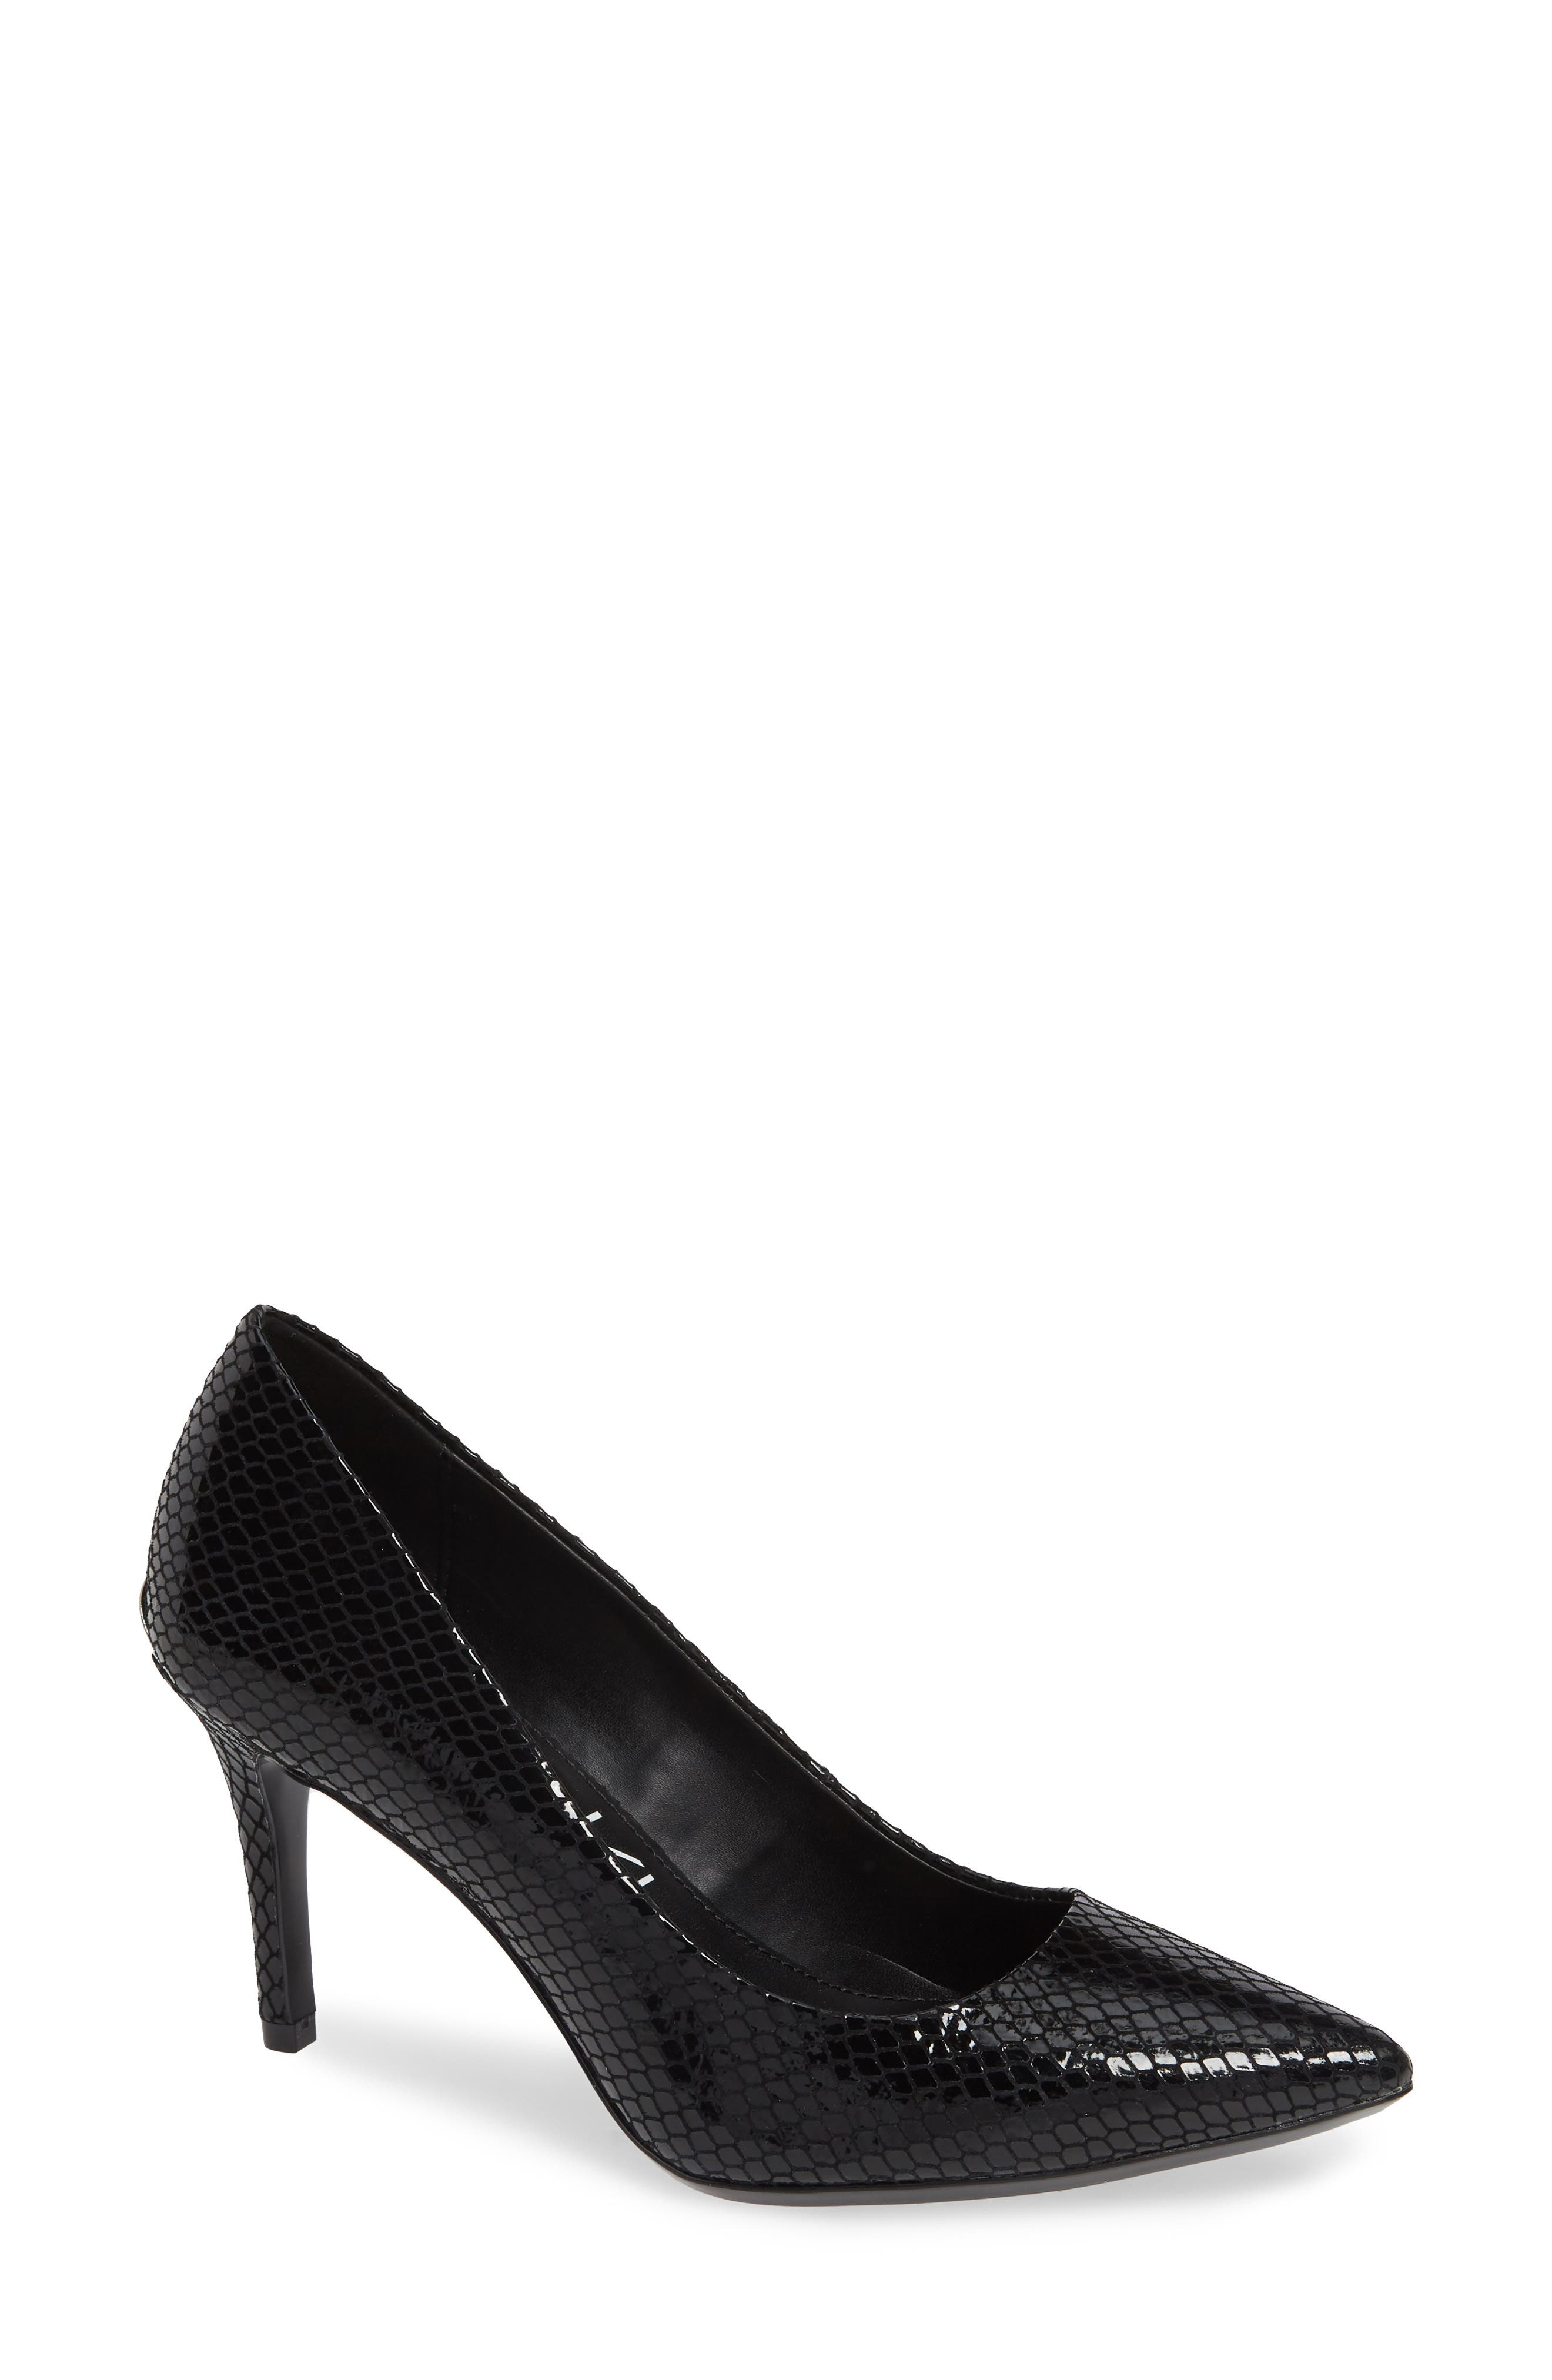 CALVIN KLEIN 'Gayle' Pointy Toe Pump, Main, color, BLACK SNAKE PRINT LEATHER